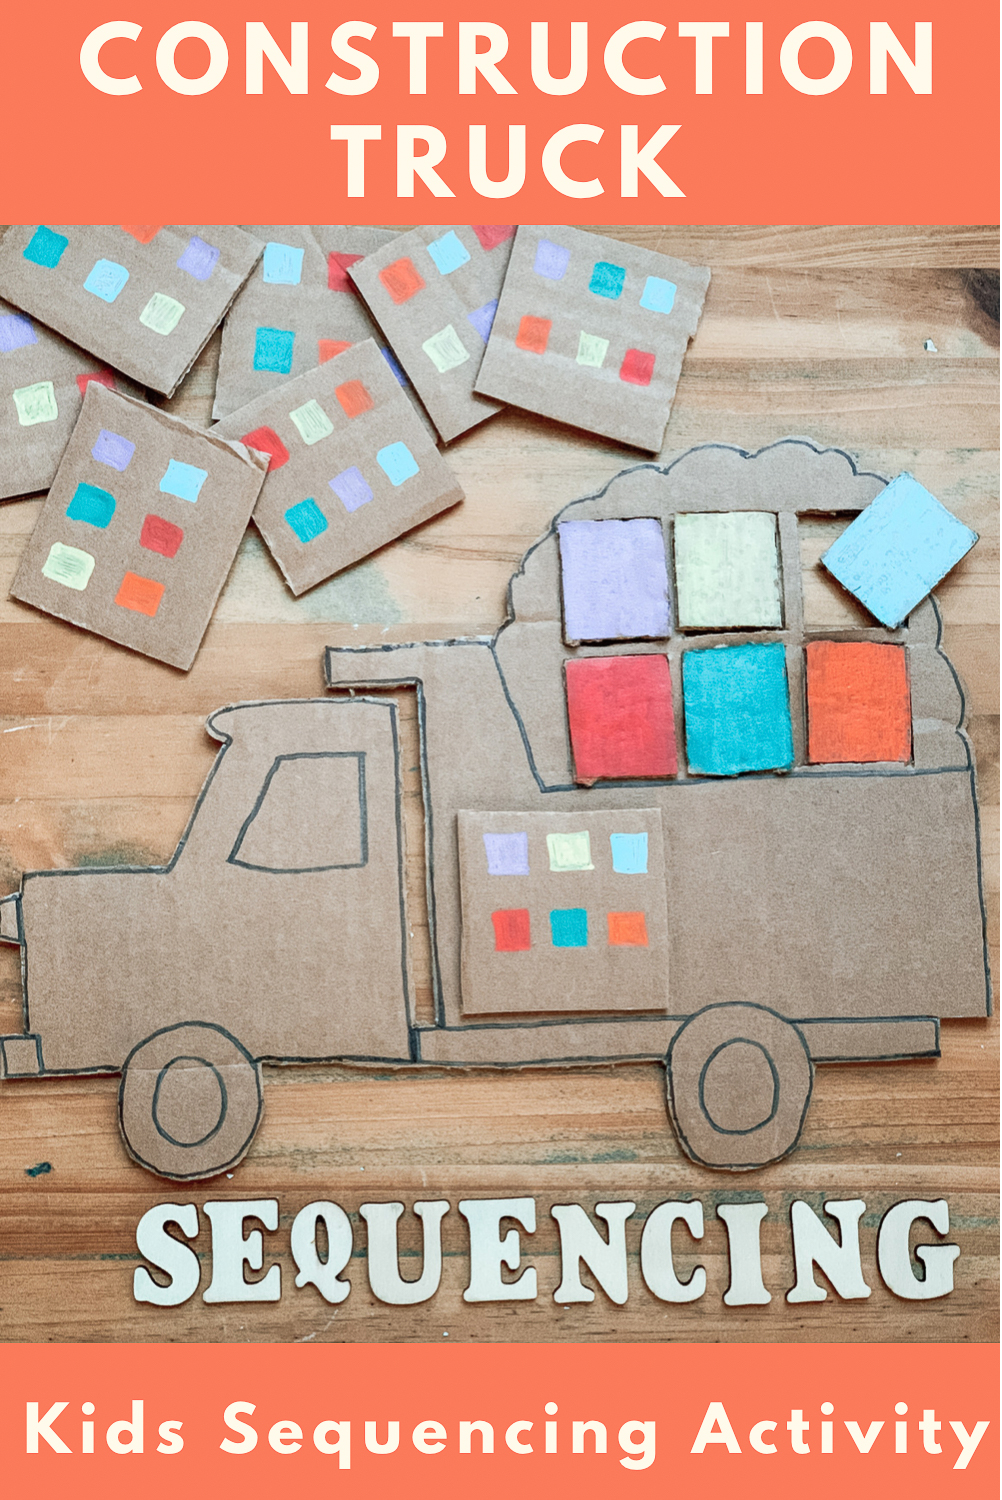 Sequencing Construction Truck